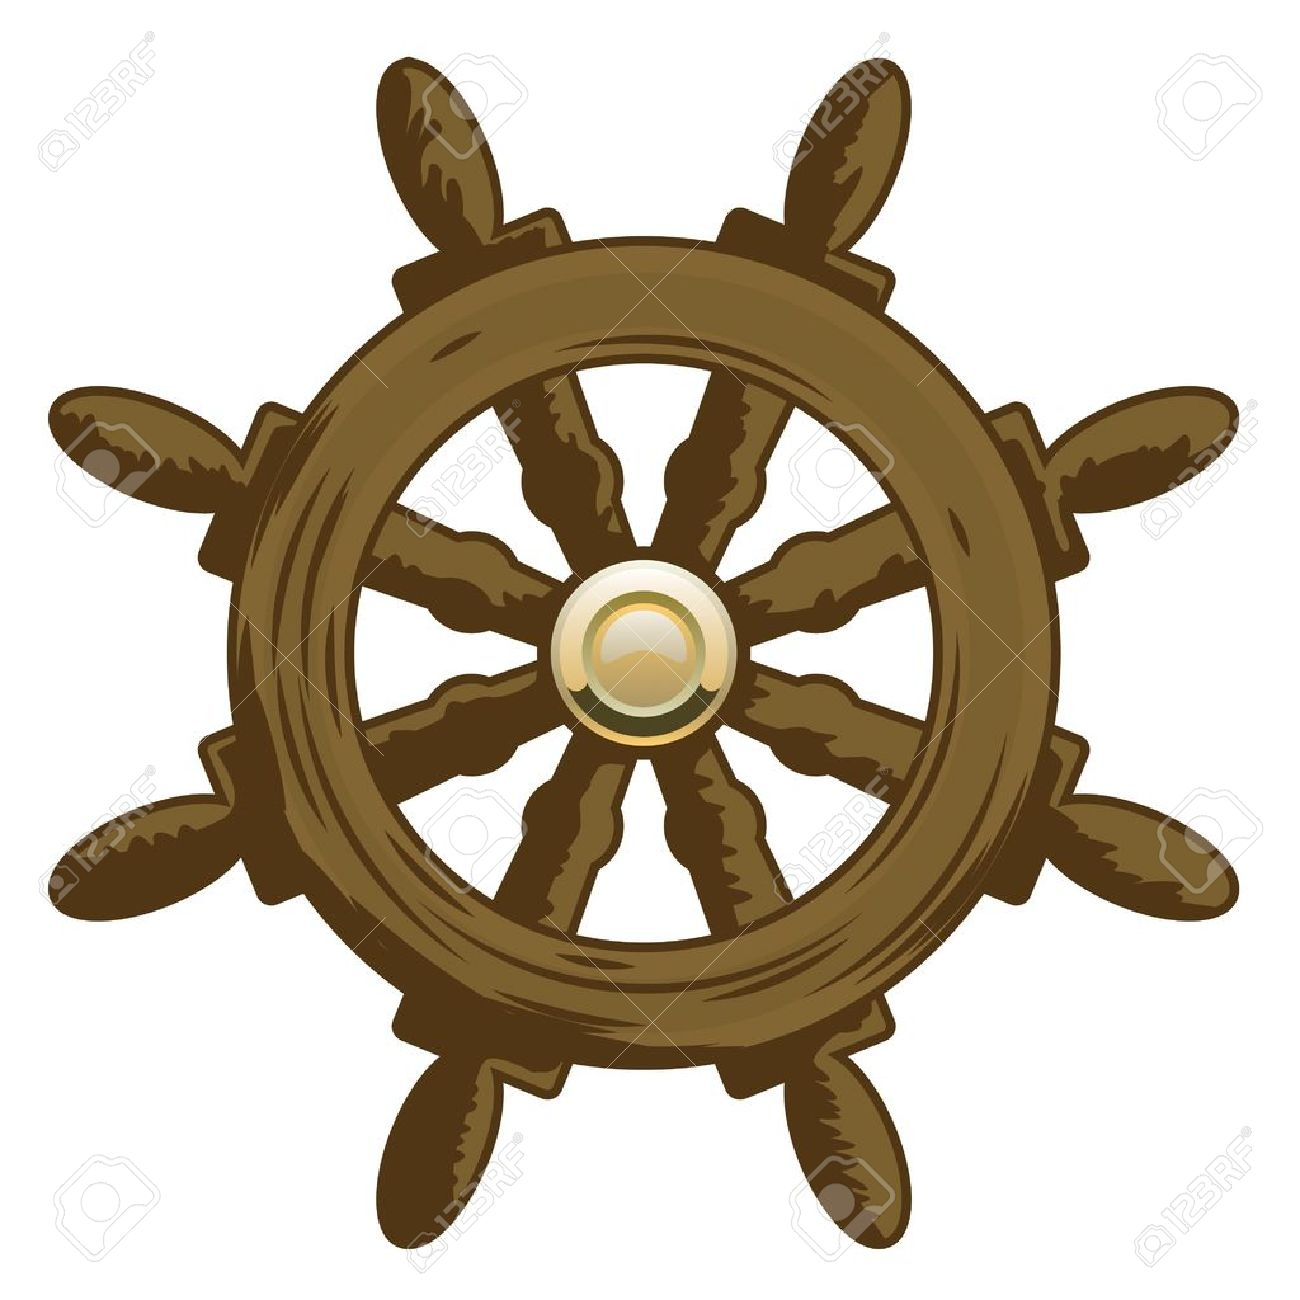 Ship free download best. Wheel clipart pirate boat